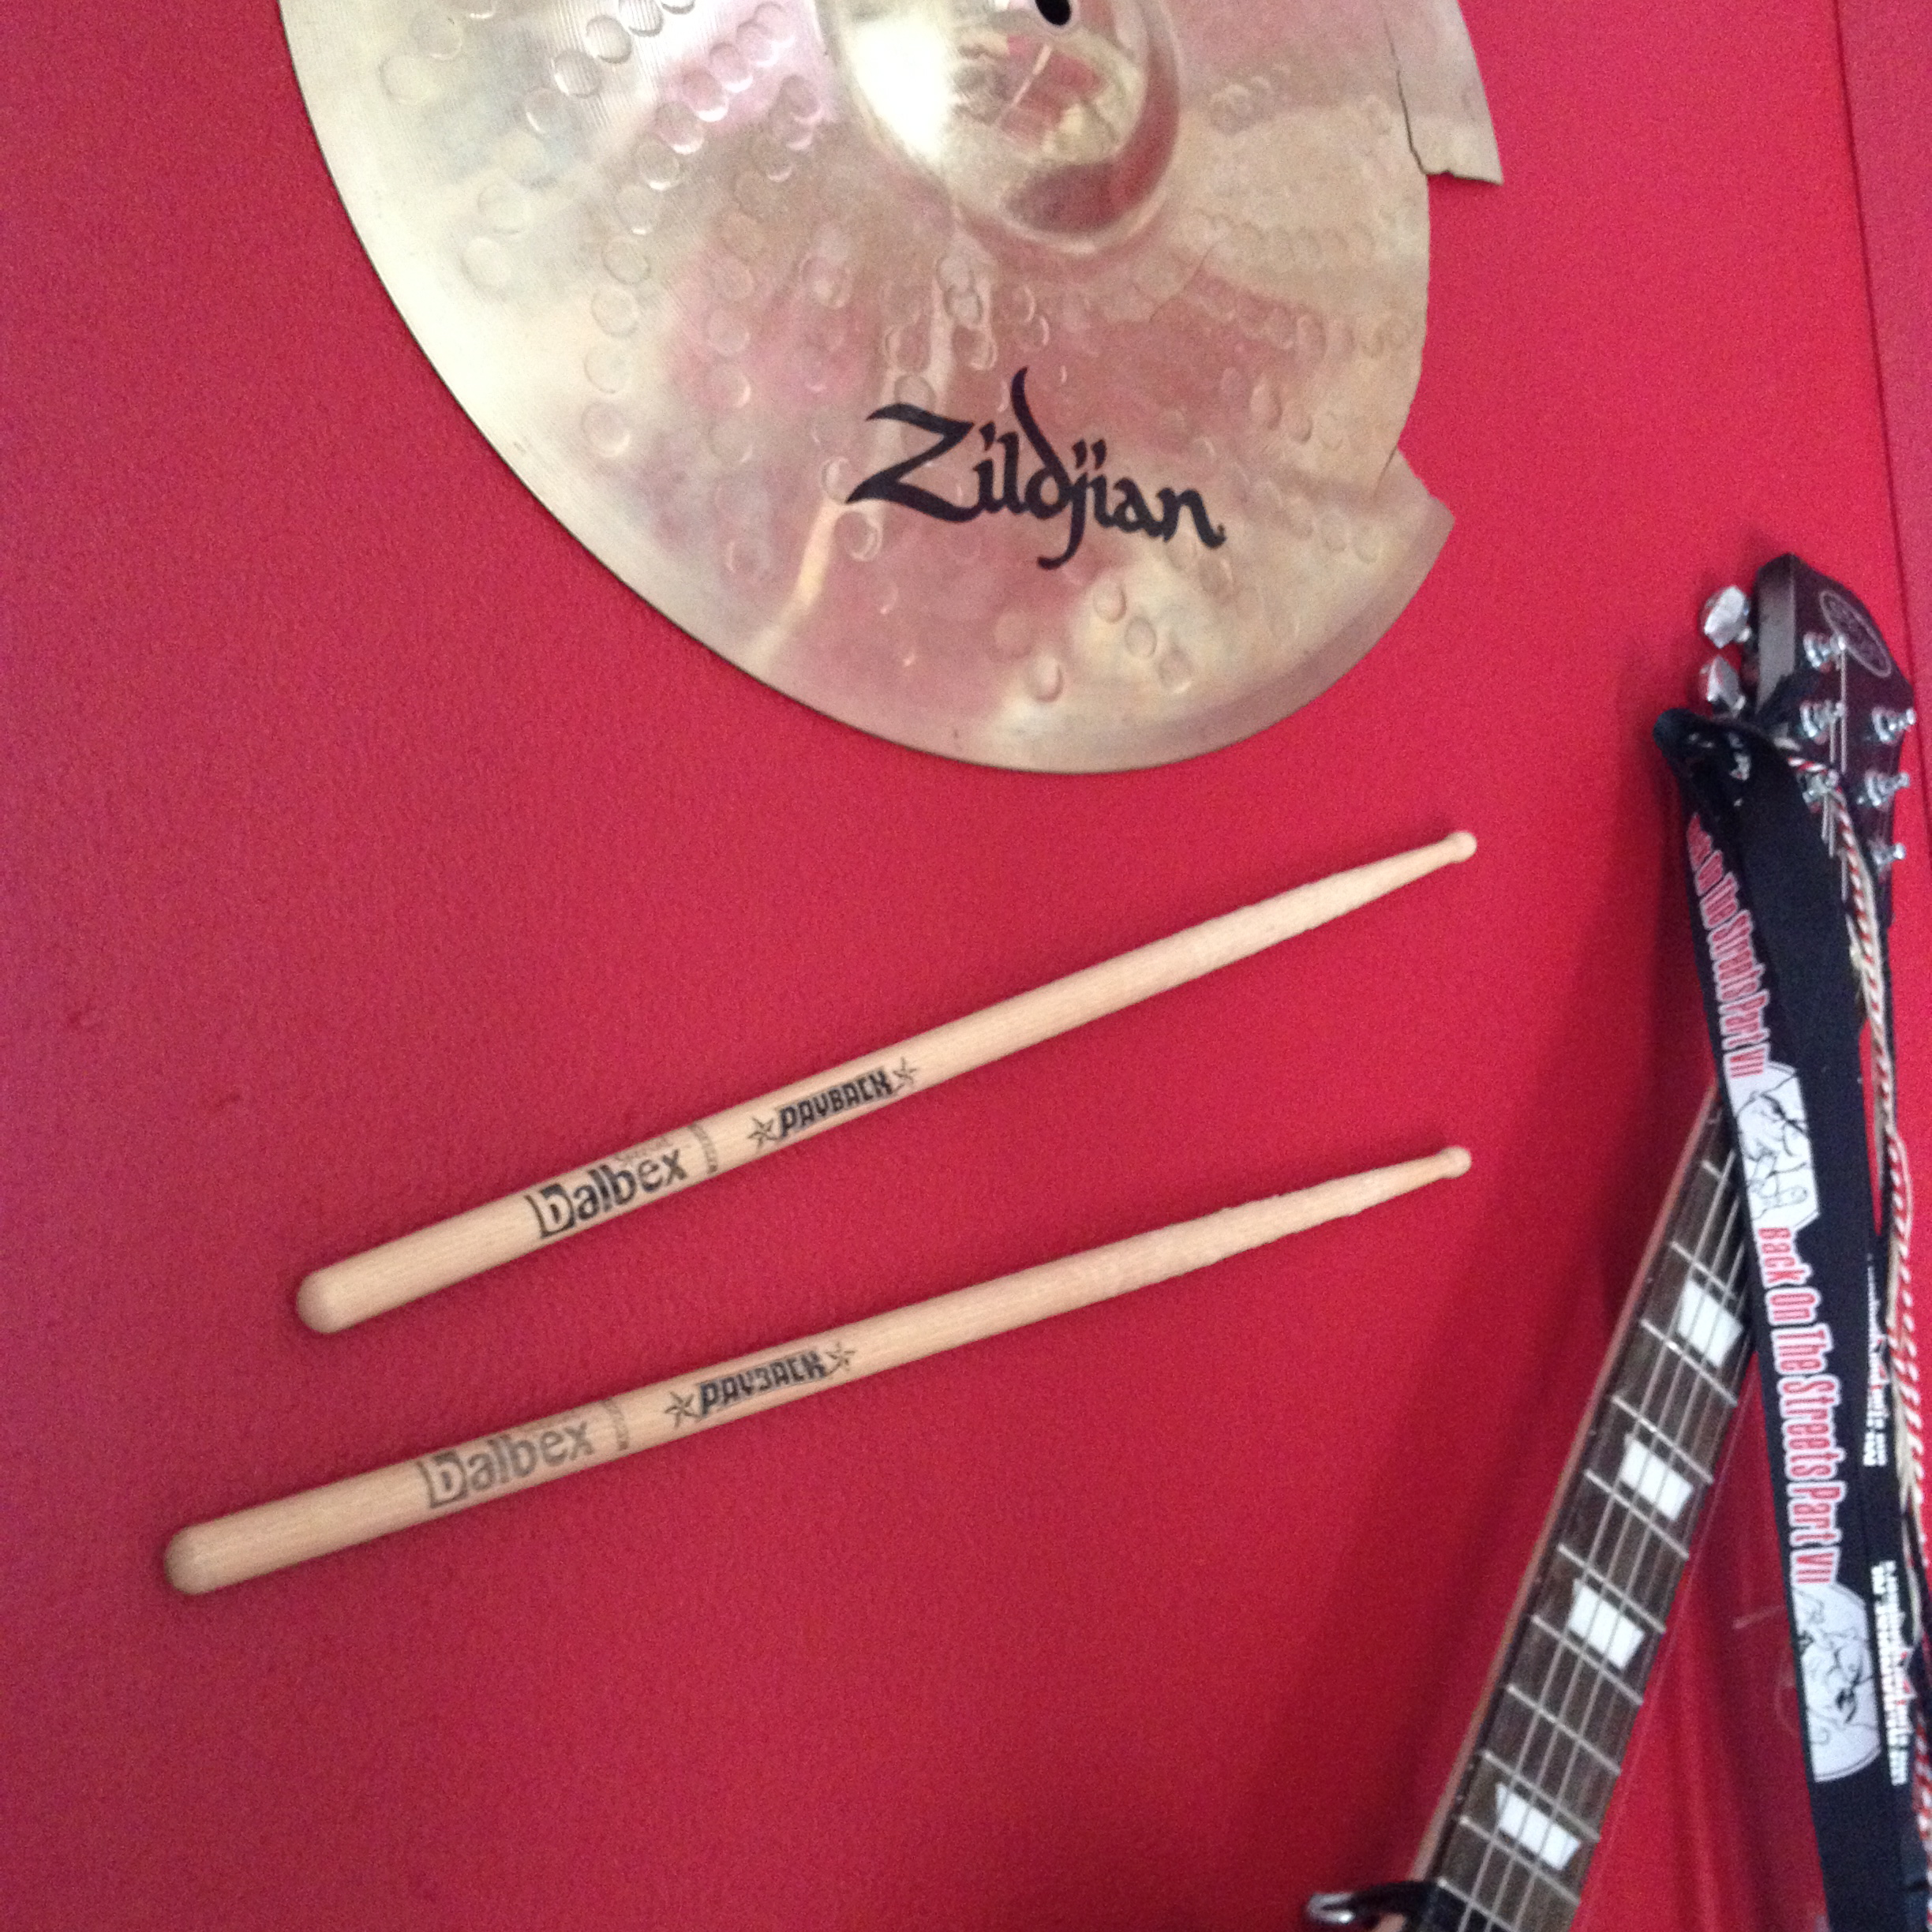 Cymbal, drumsticks, guitar, on the wall / Bekkens, drumstokken, gitaar, aan de muur // VAN BRITT